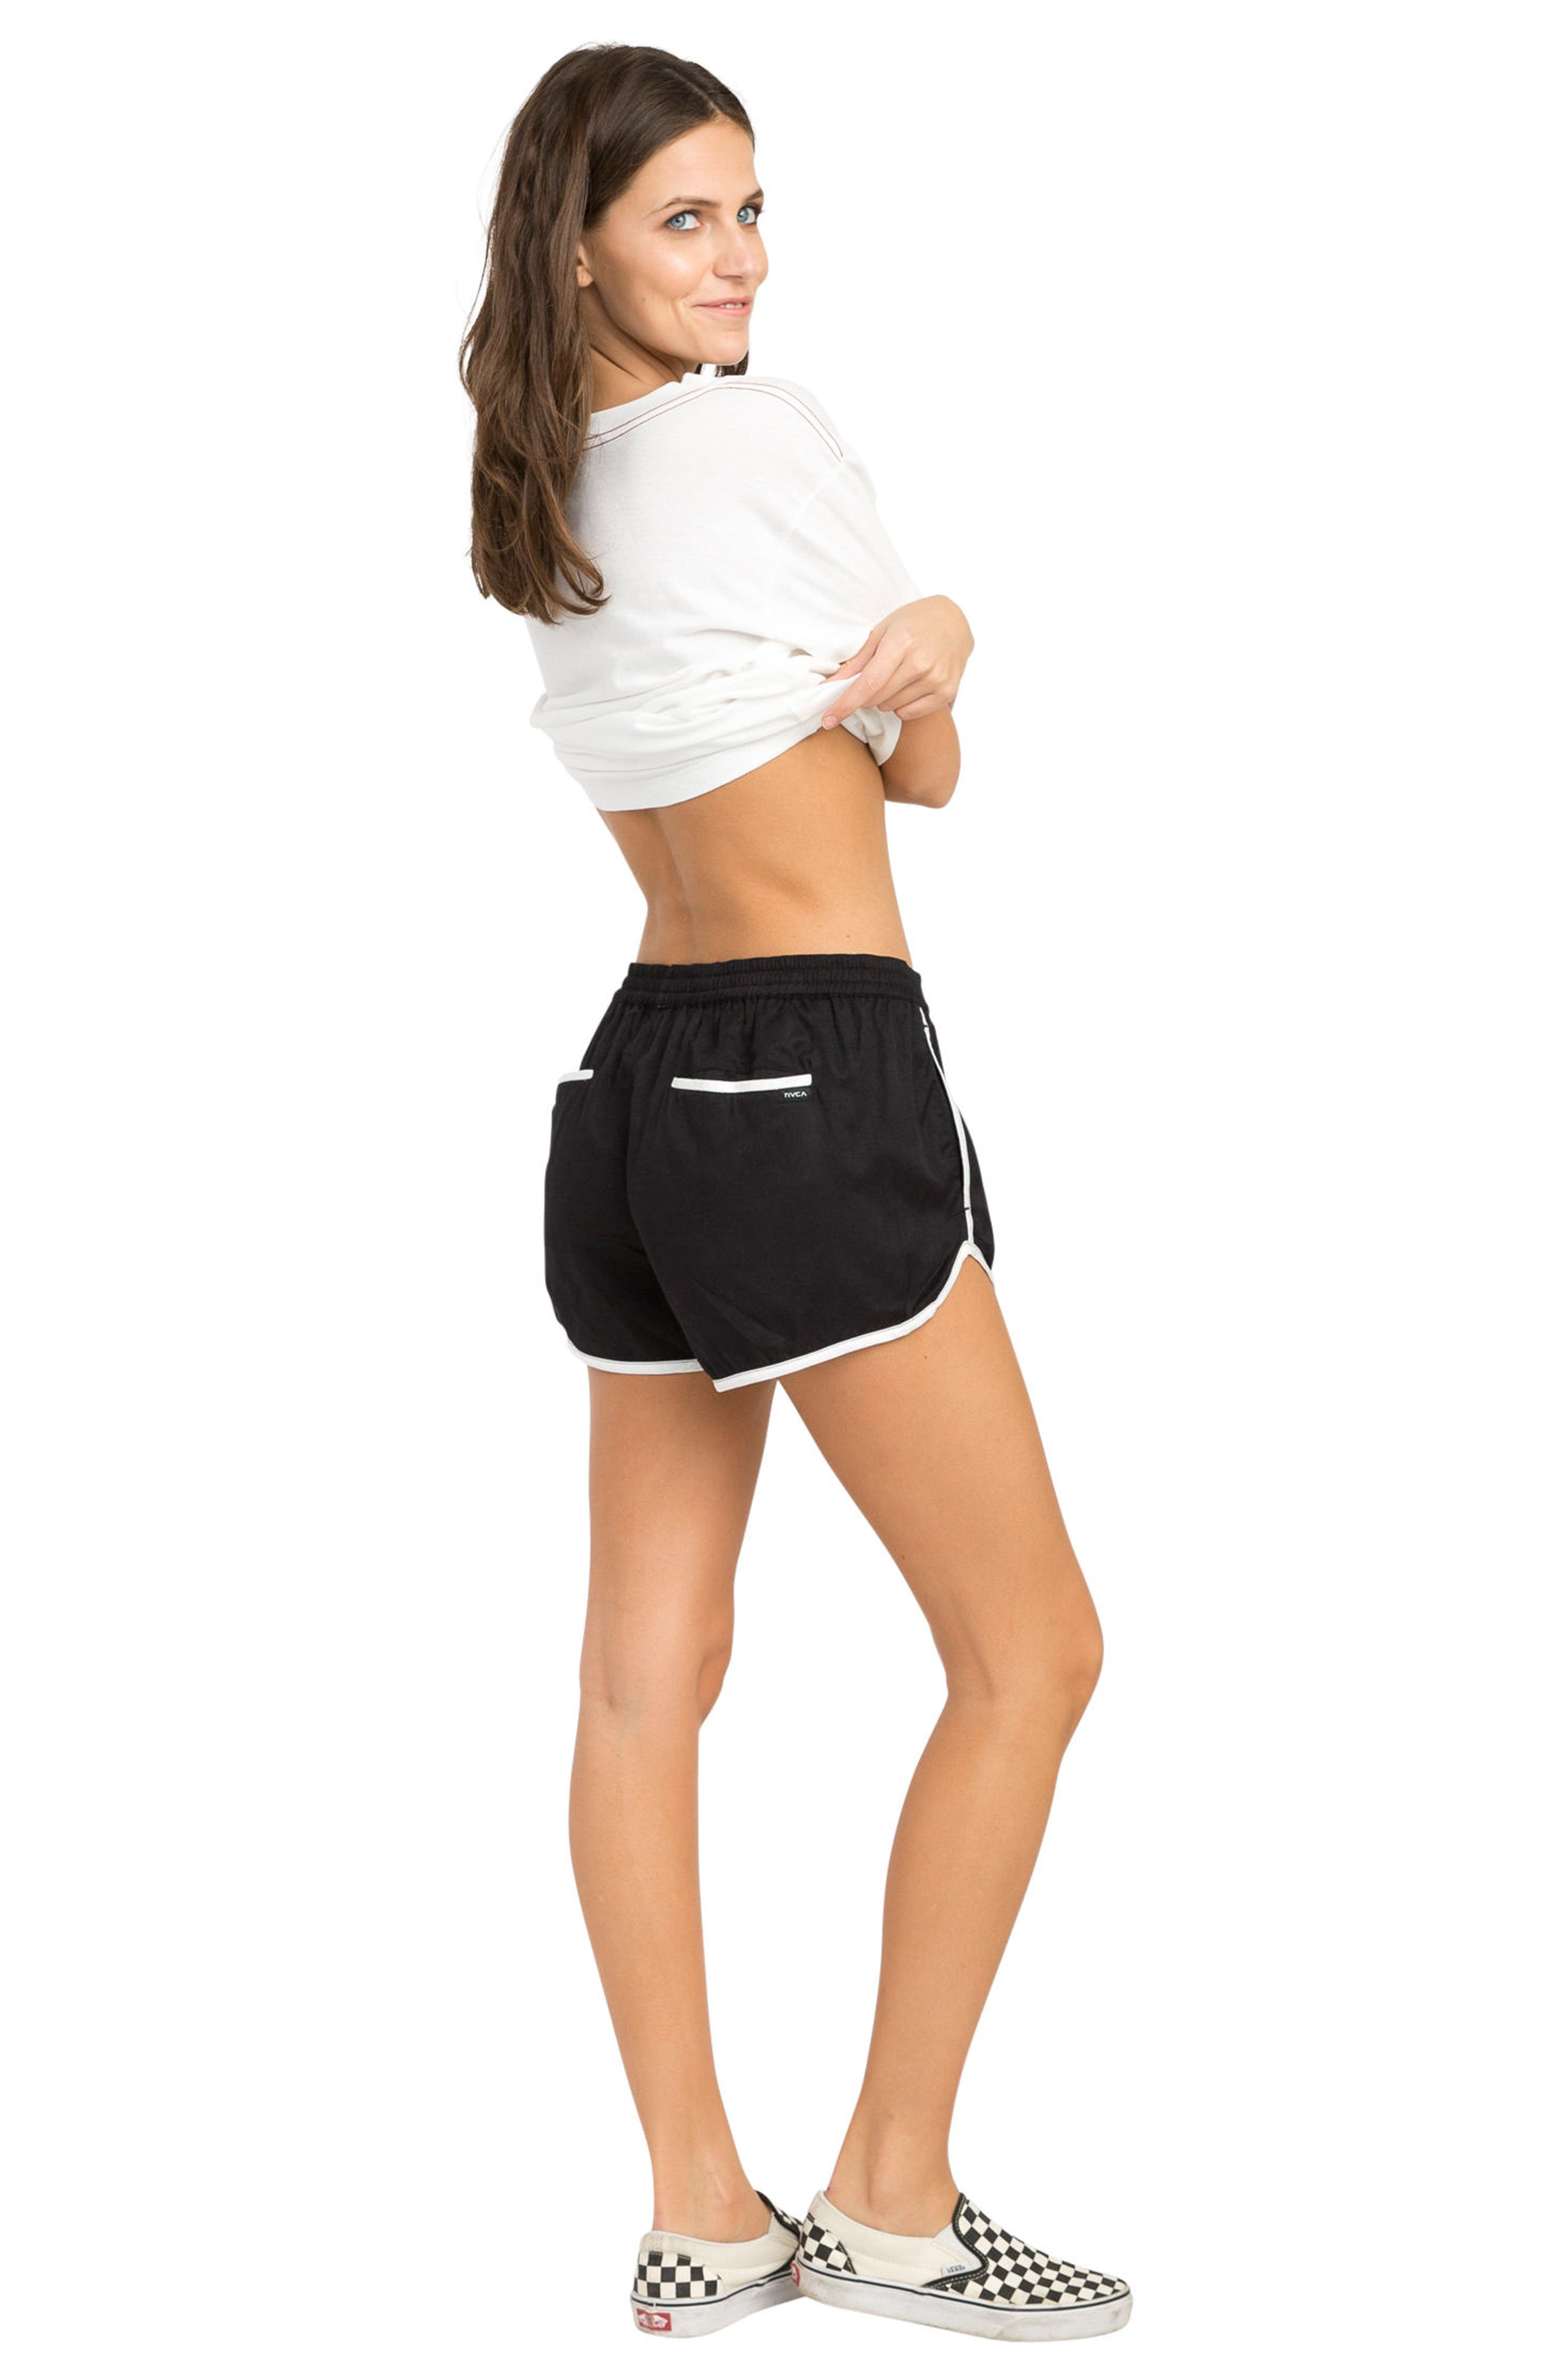 Cruising Dolphin Shorts,                             Alternate thumbnail 2, color,                             Black